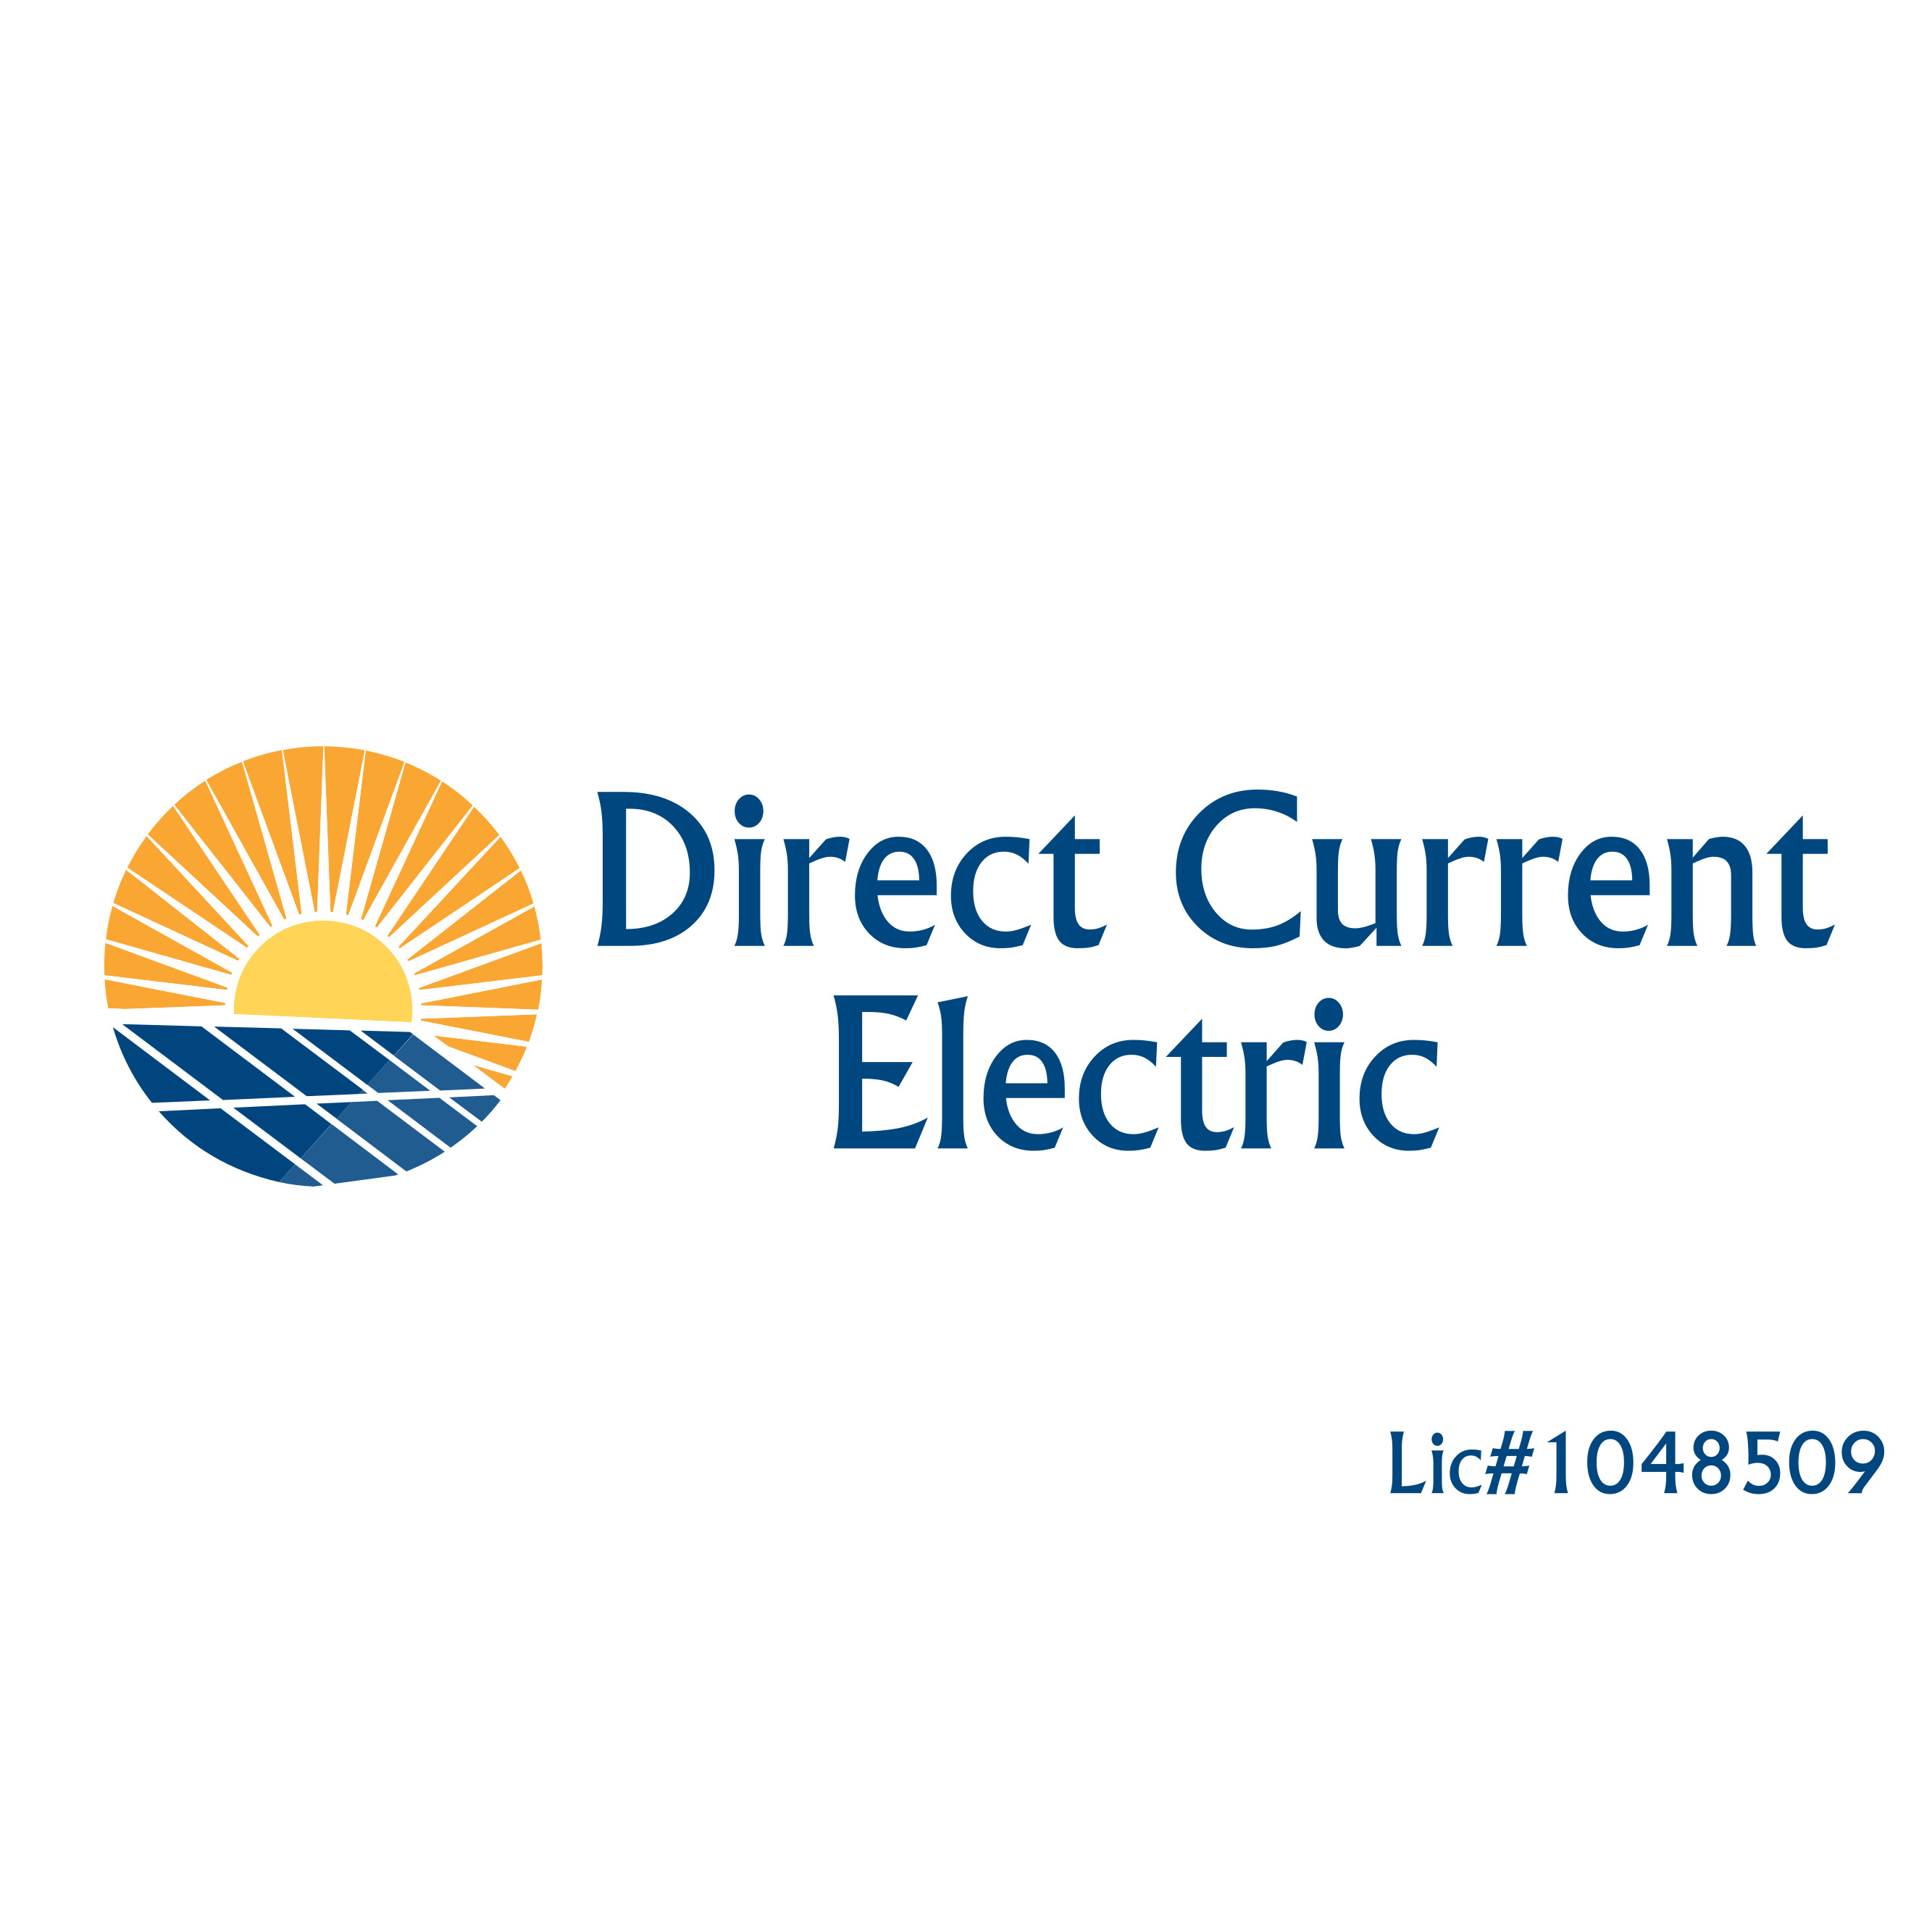 Direct Current Electric